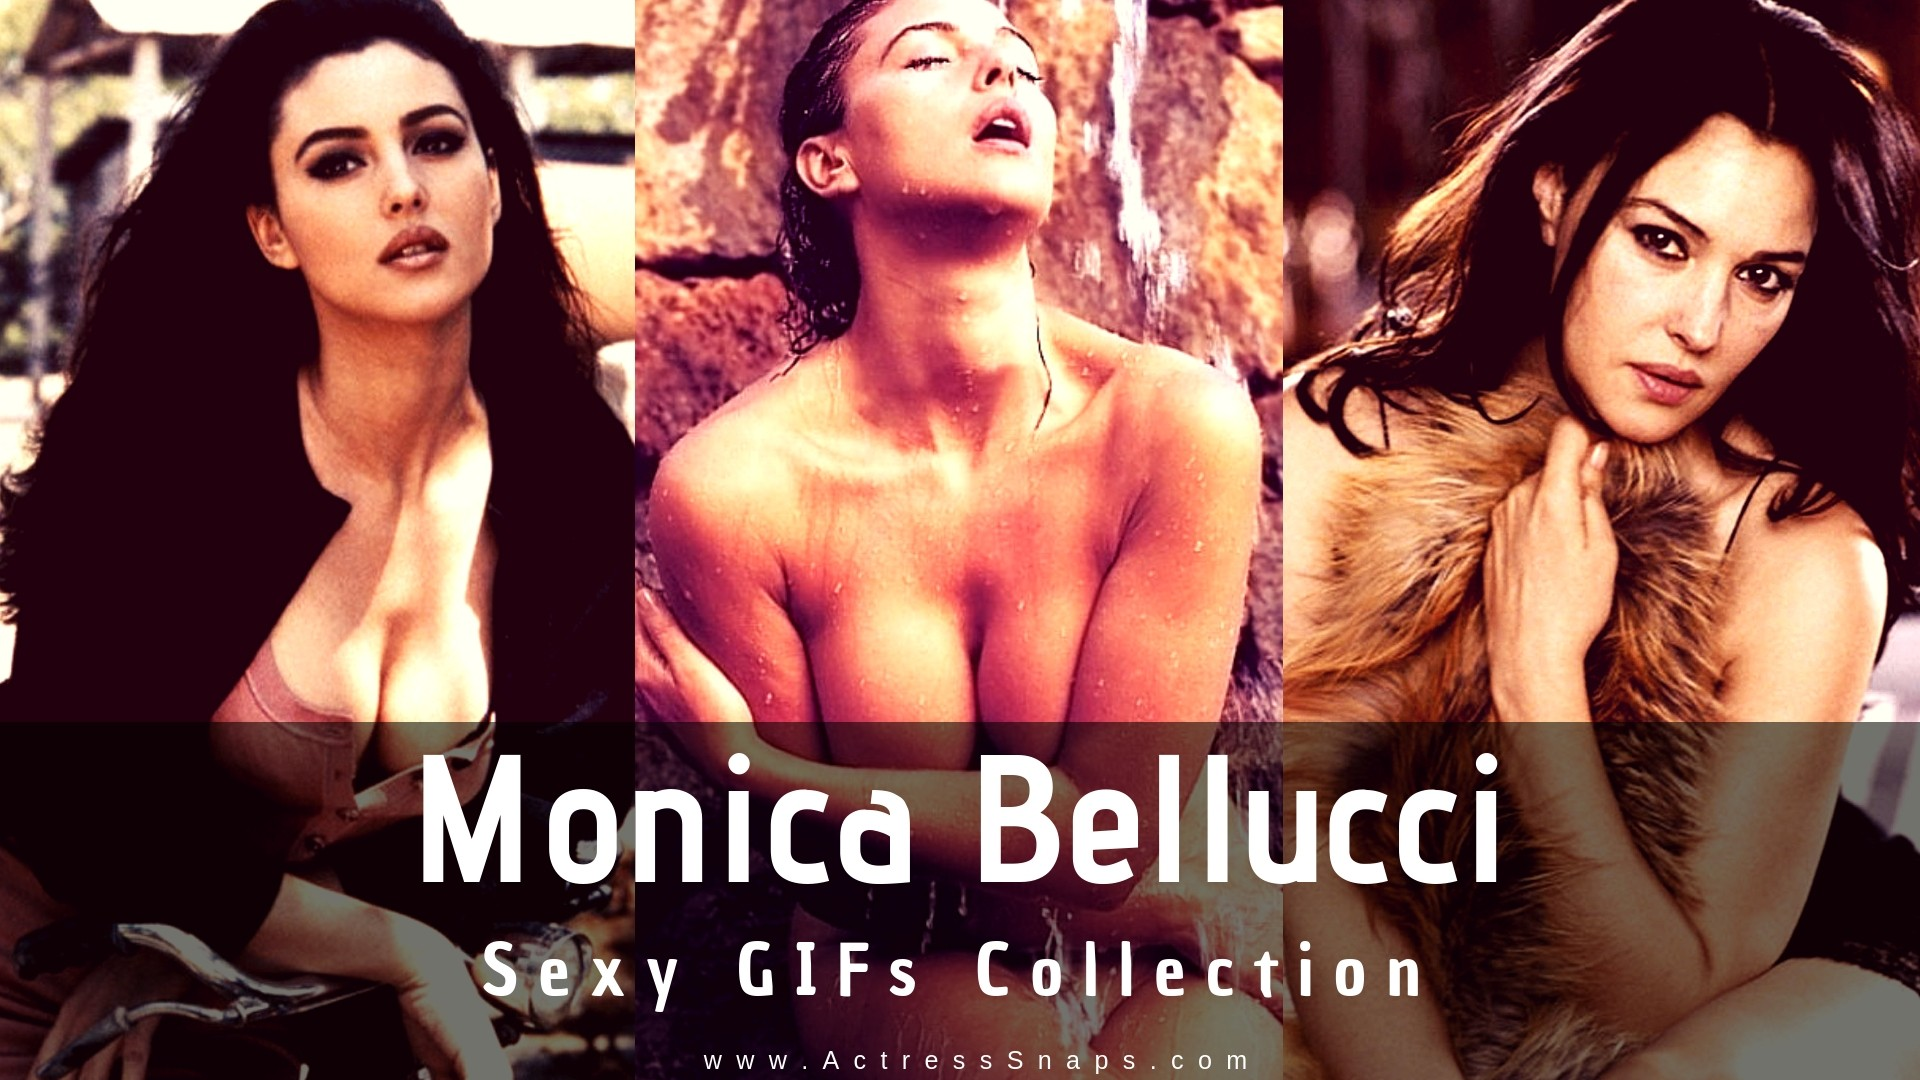 Sexy Monica Belluci GIFs Collection - Sexy Actress Pictures | Hot Actress Pictures - ActressSnaps.com